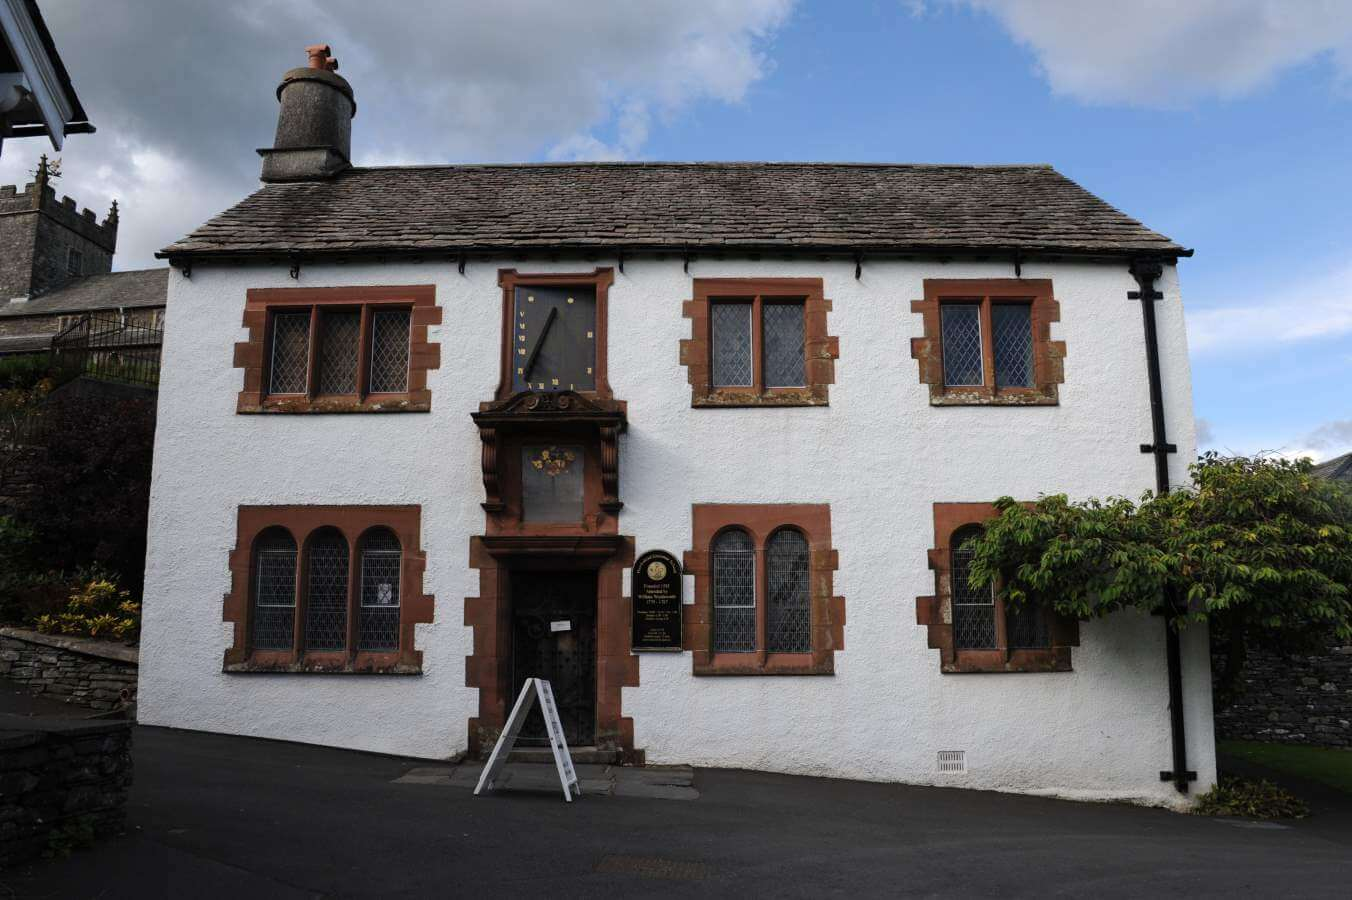 Beatrix potter gallery and Hawkshead best things to do ambleside